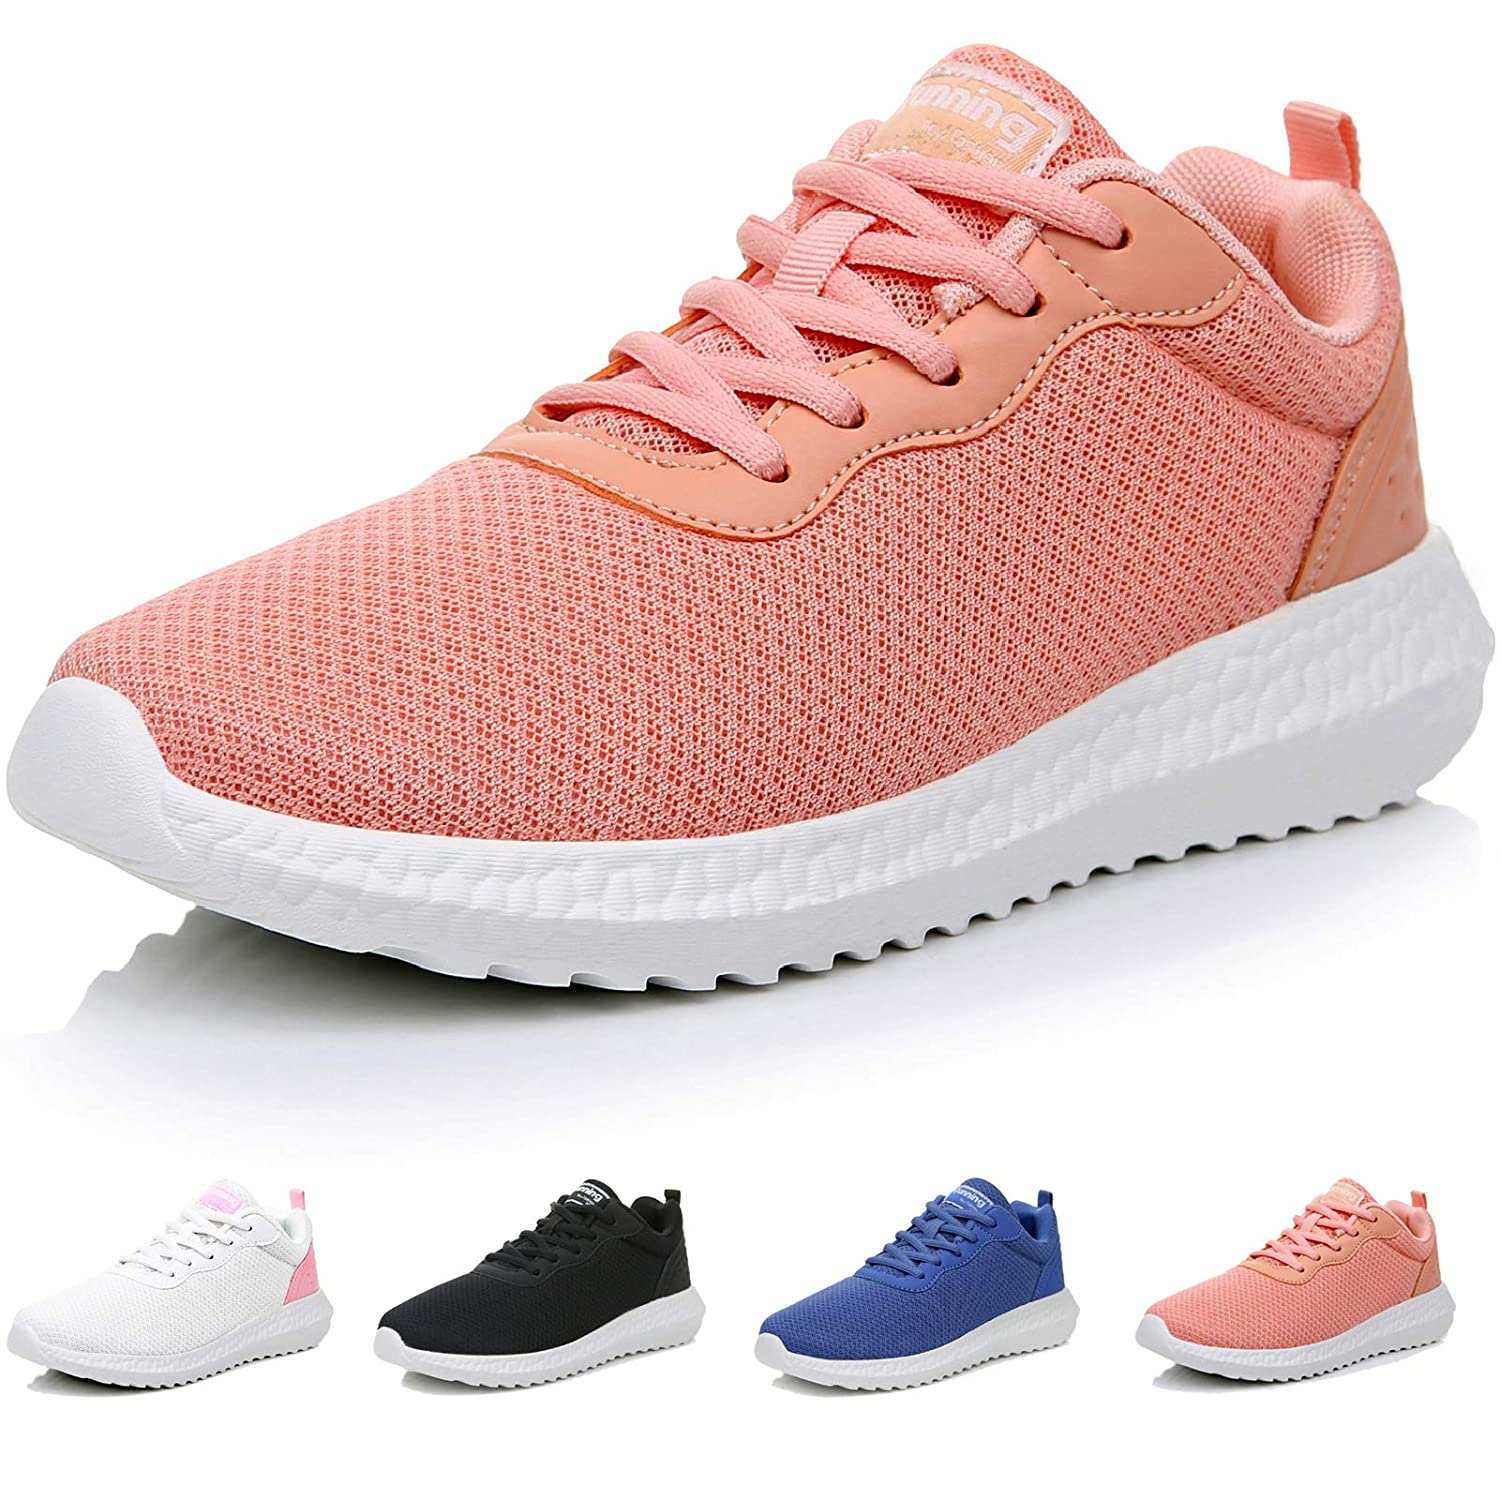 GOOBON Women s Running Tennis Shoes Non-Slip Breathable Walking Sneakers Sports Gym Casual Lightweight Fashion Athletic US5.5-10